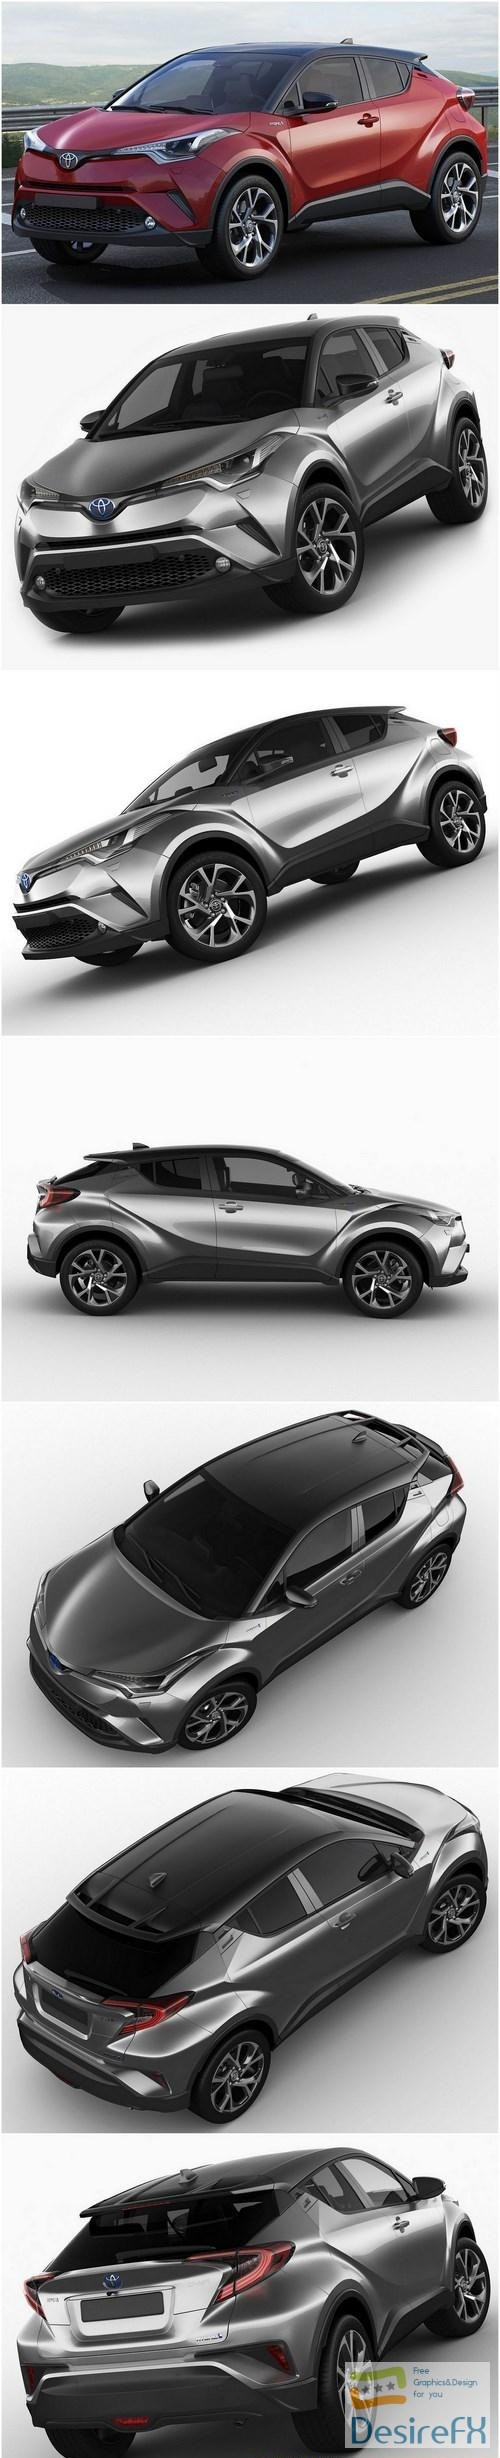 3d-models - Toyota C-HR 2017 3D model